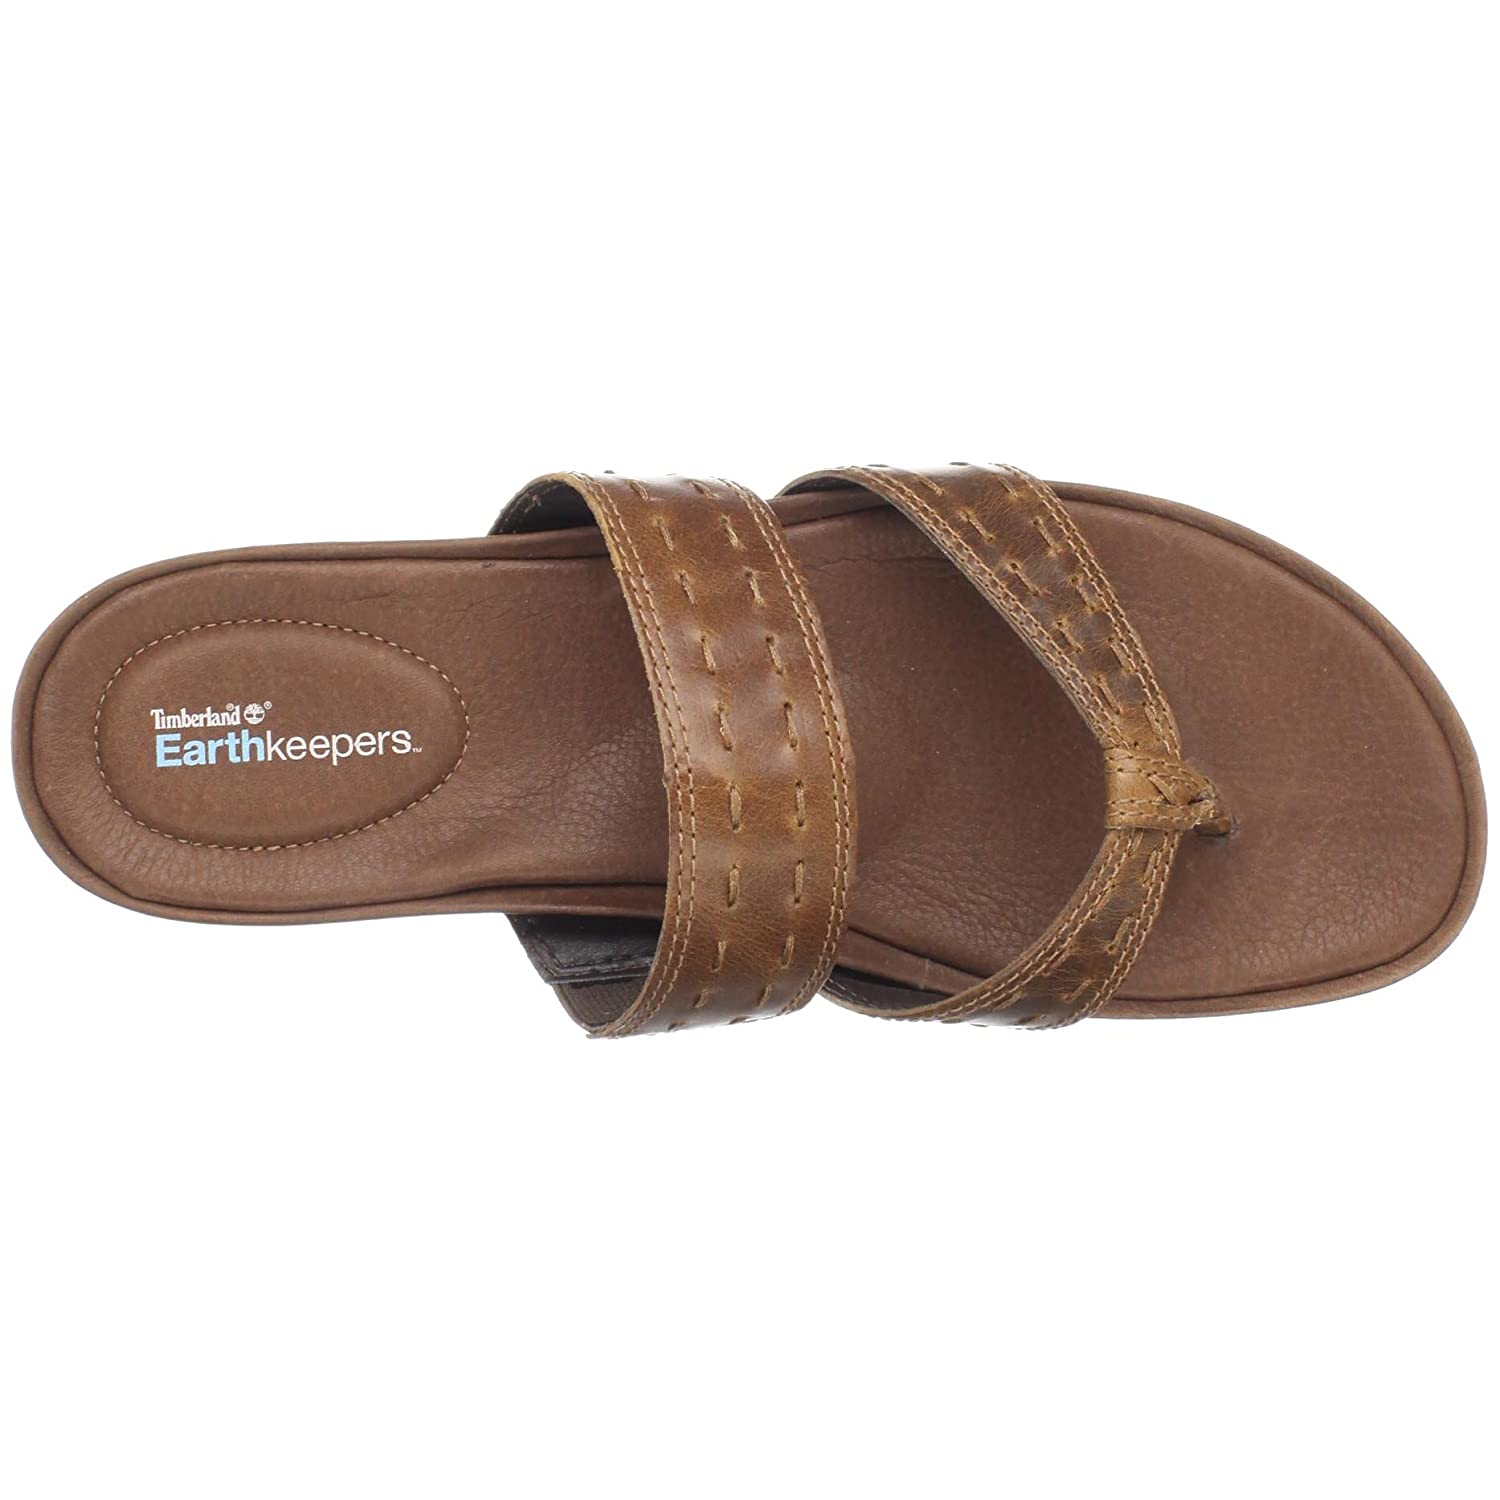 Les Earthkeepers Des Femmes Timberland Sandales String Agréable Baie 54BkyXZD